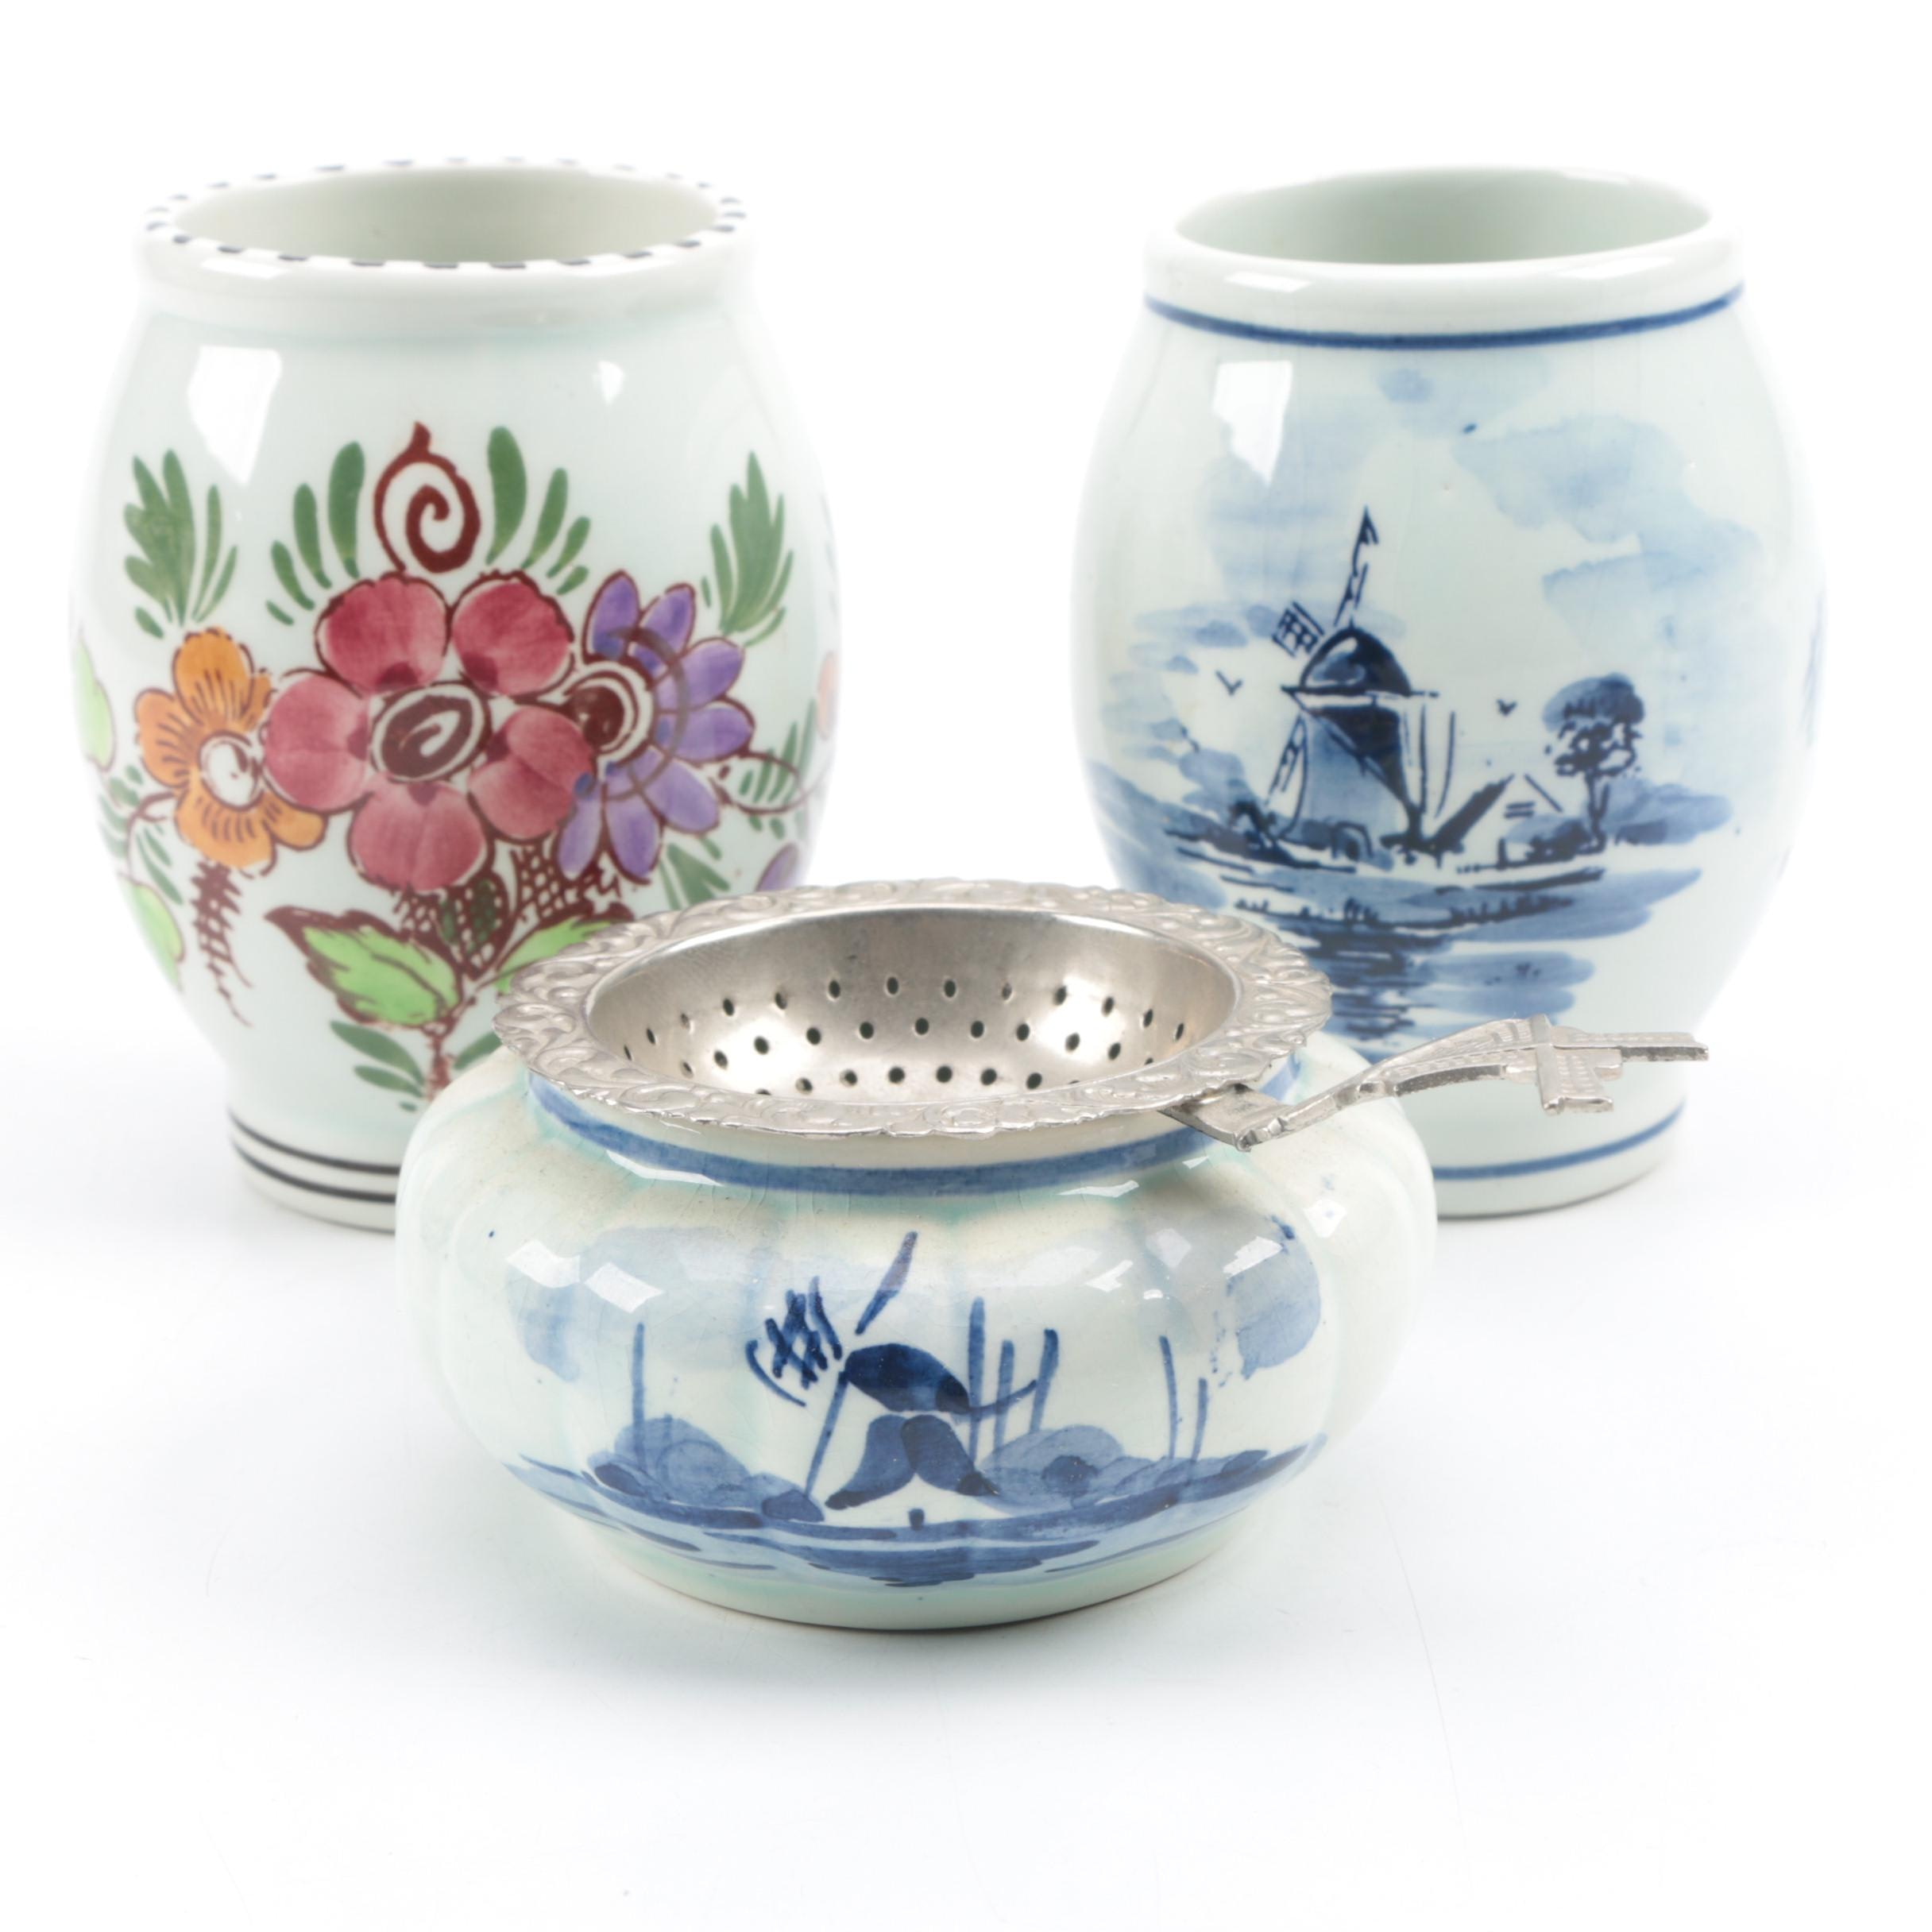 Delftse Pauw Floral and Two Pieces of Delftware